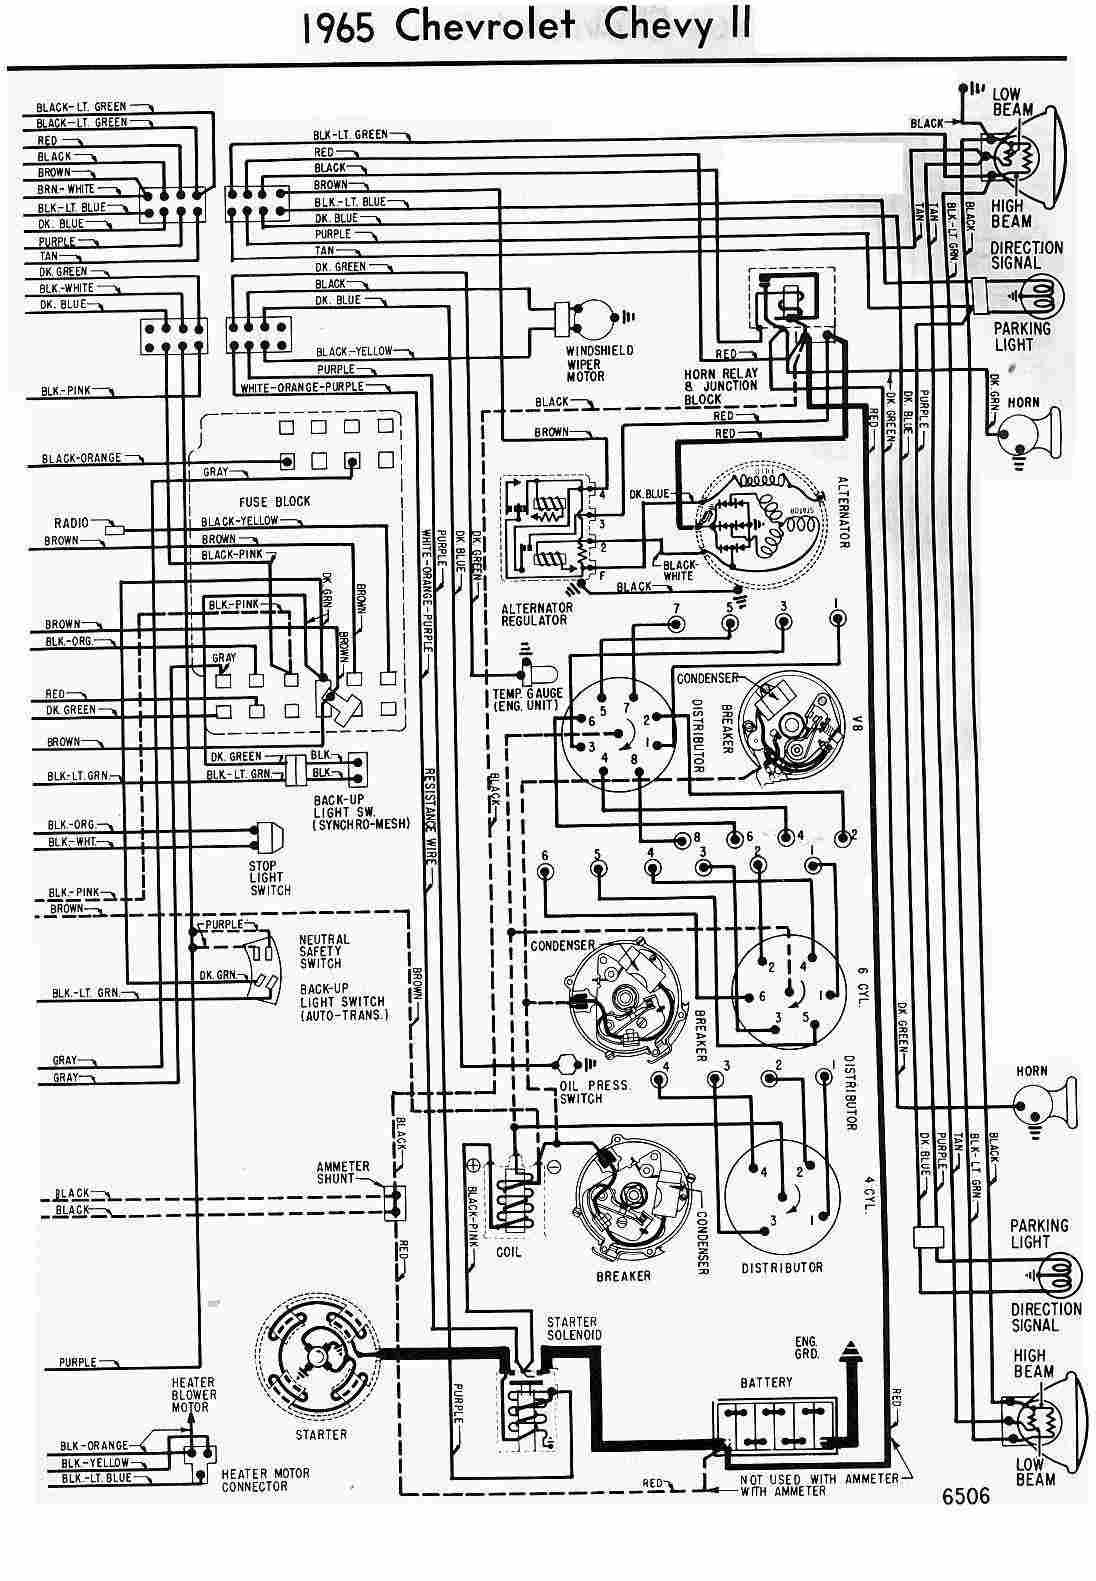 medium resolution of 1970 camaro wiring diagram as well chevy wiring diagrams scematic 1972 chevy camaro wiring schematic 1972